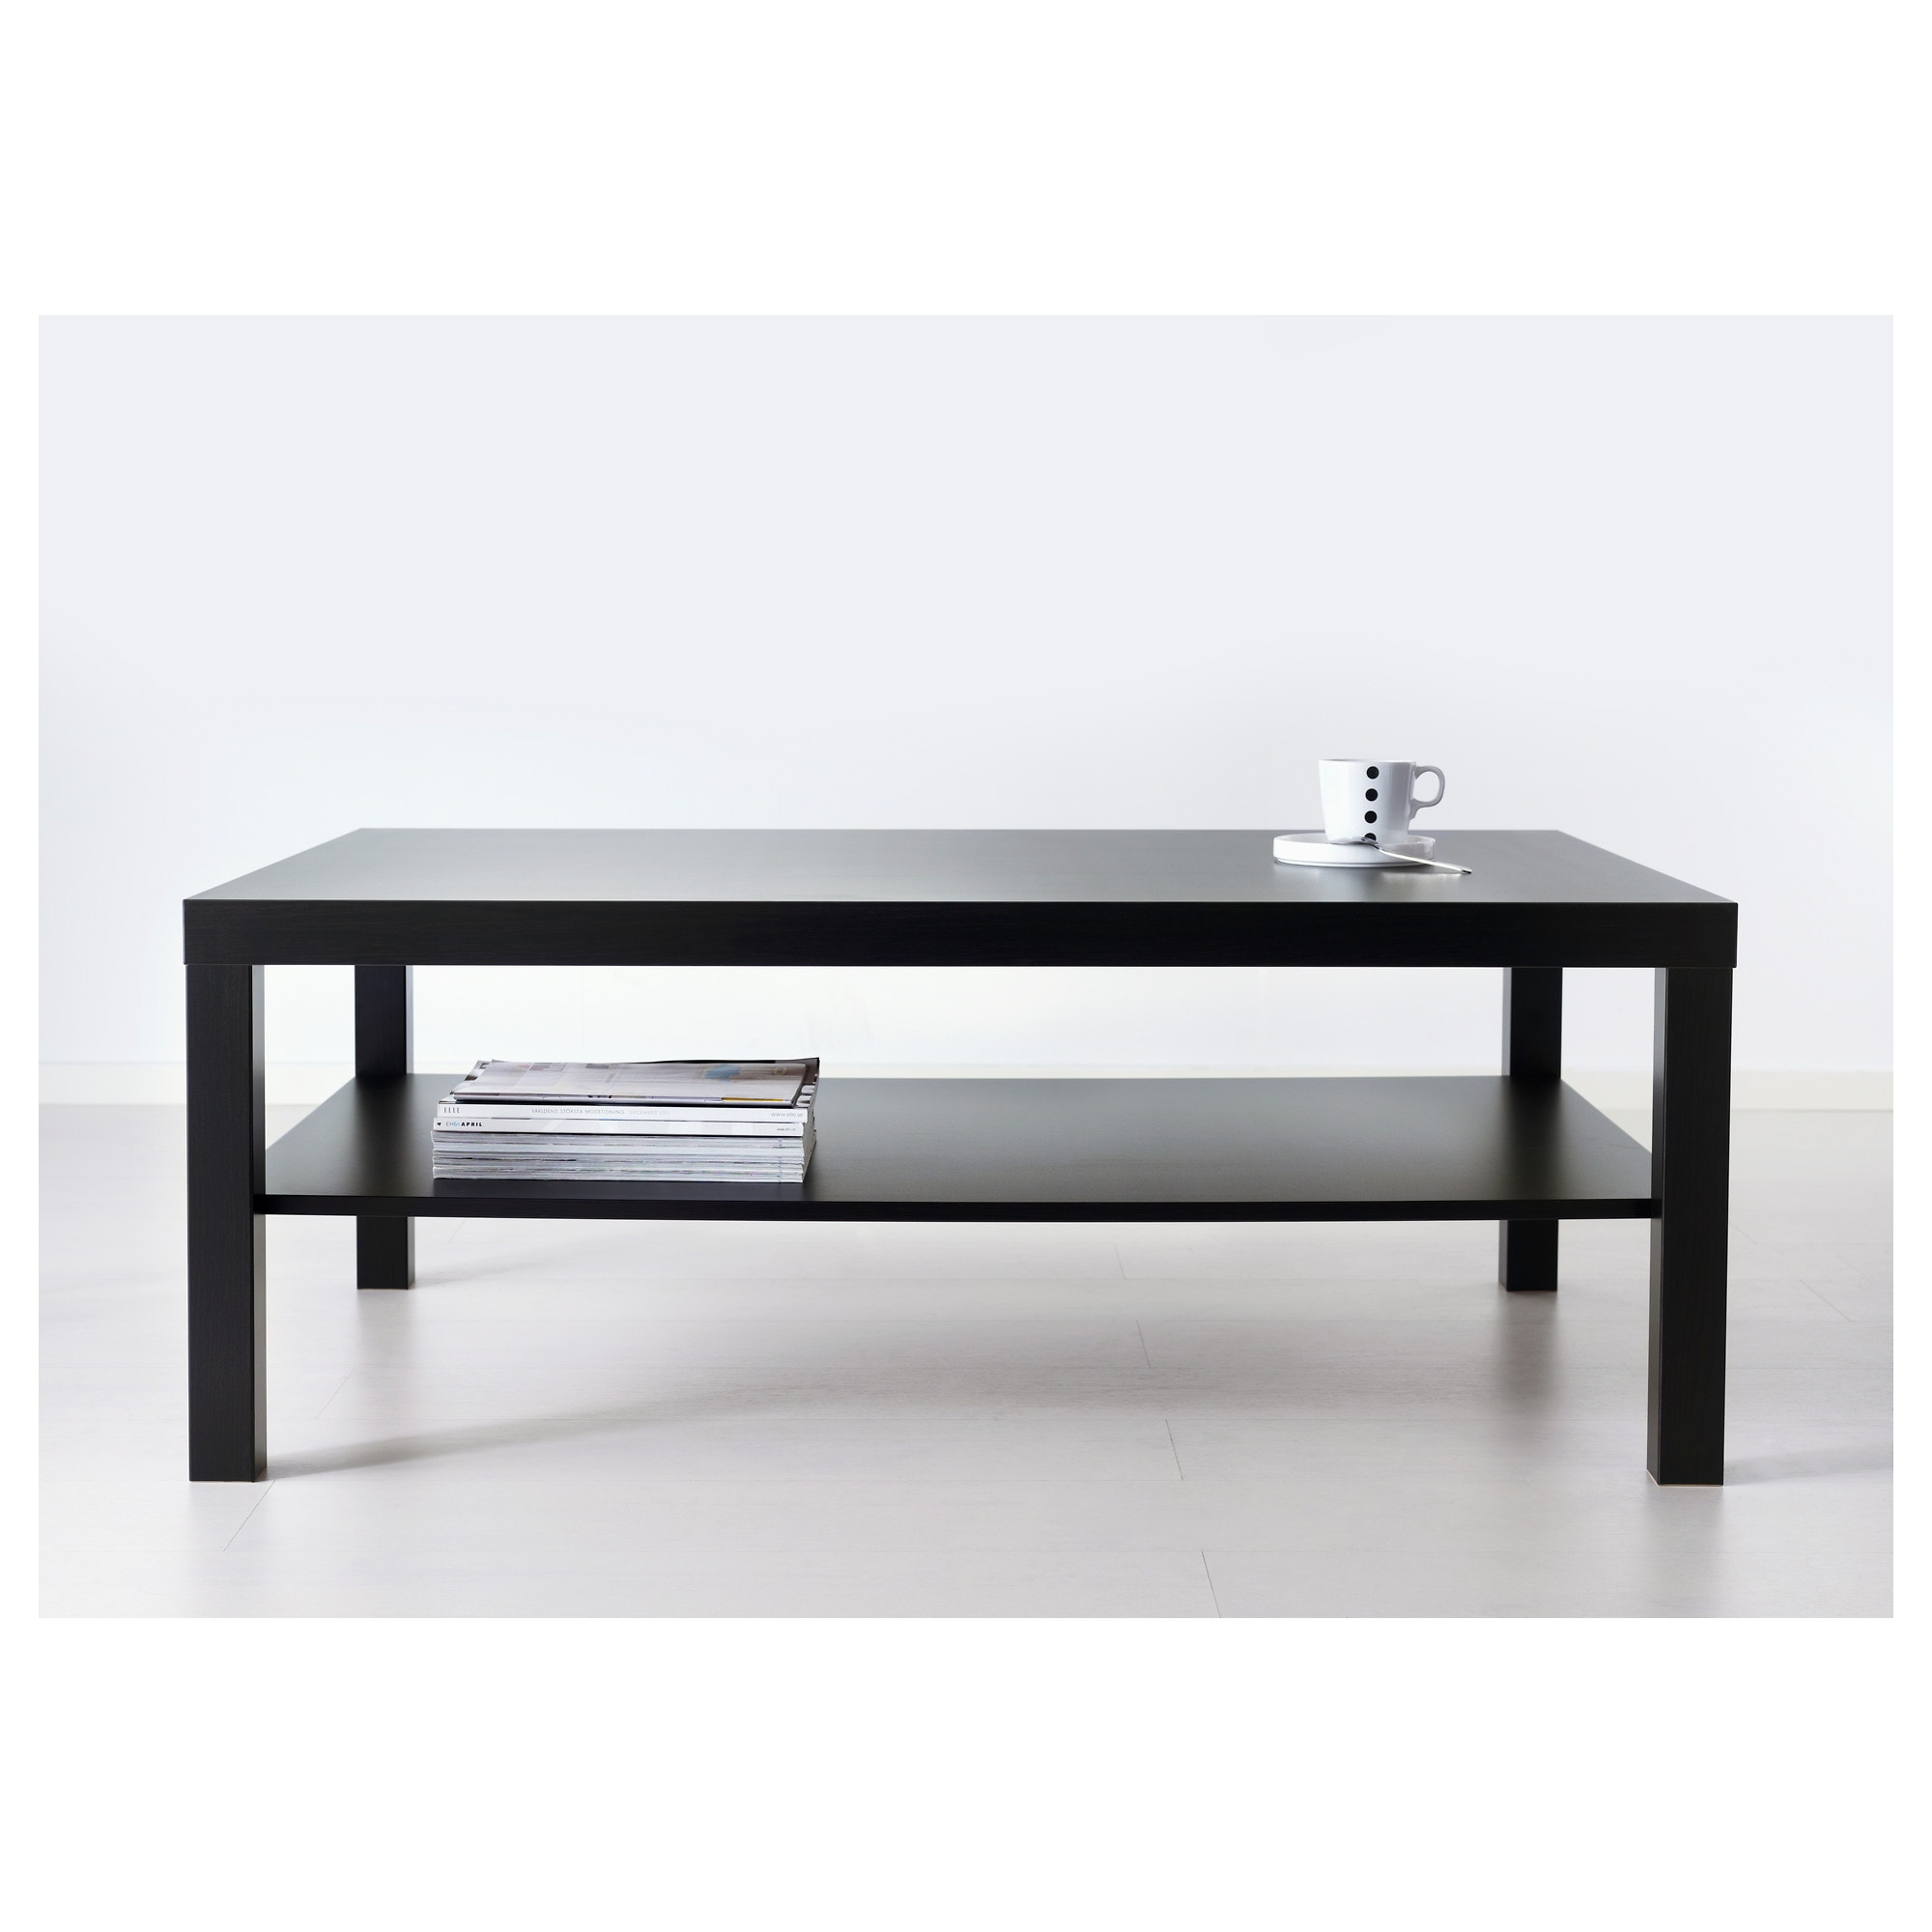 Table basse plateau qui se leve for Table qui se leve